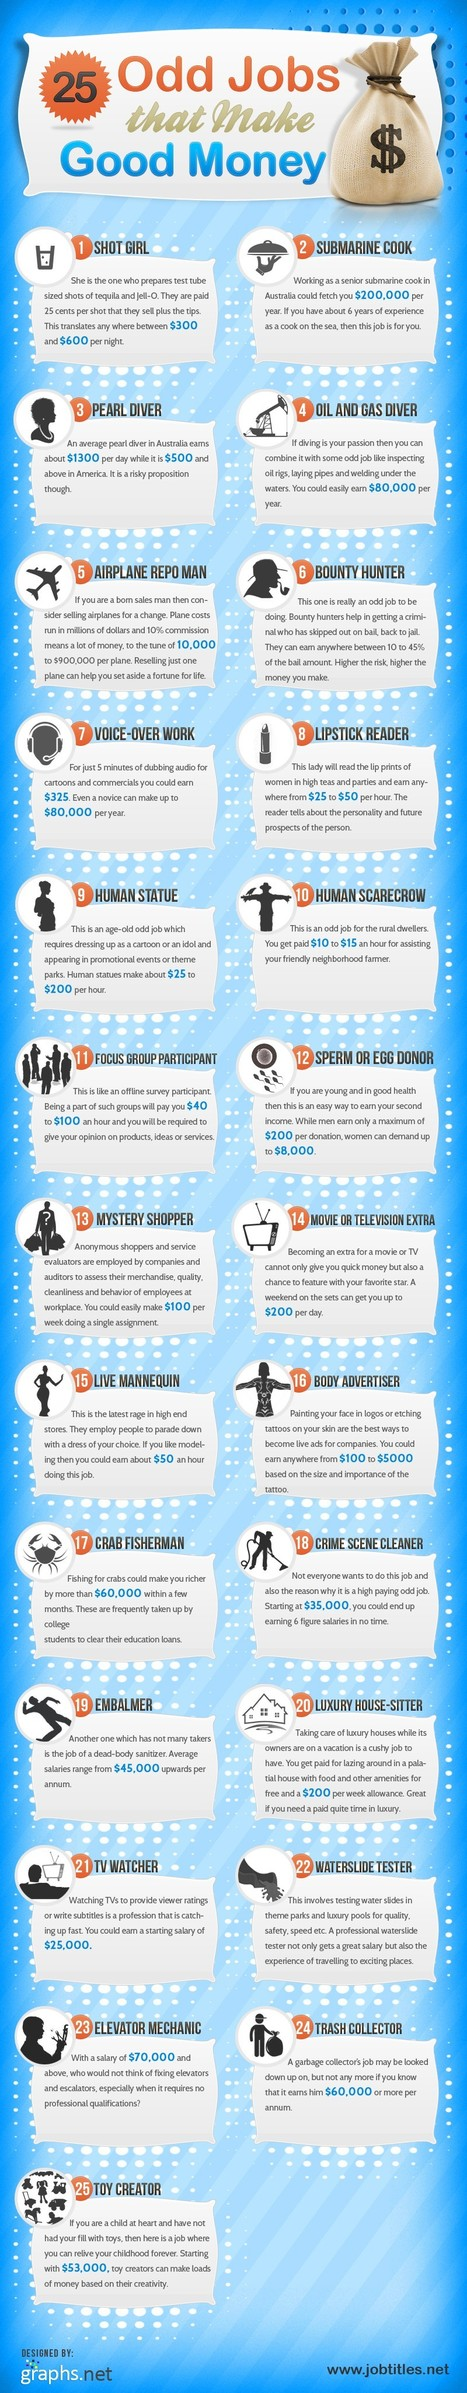 Top 25 Best Jobs that can bring in Good and Instant Money | All Infographics | Social media and education | Scoop.it